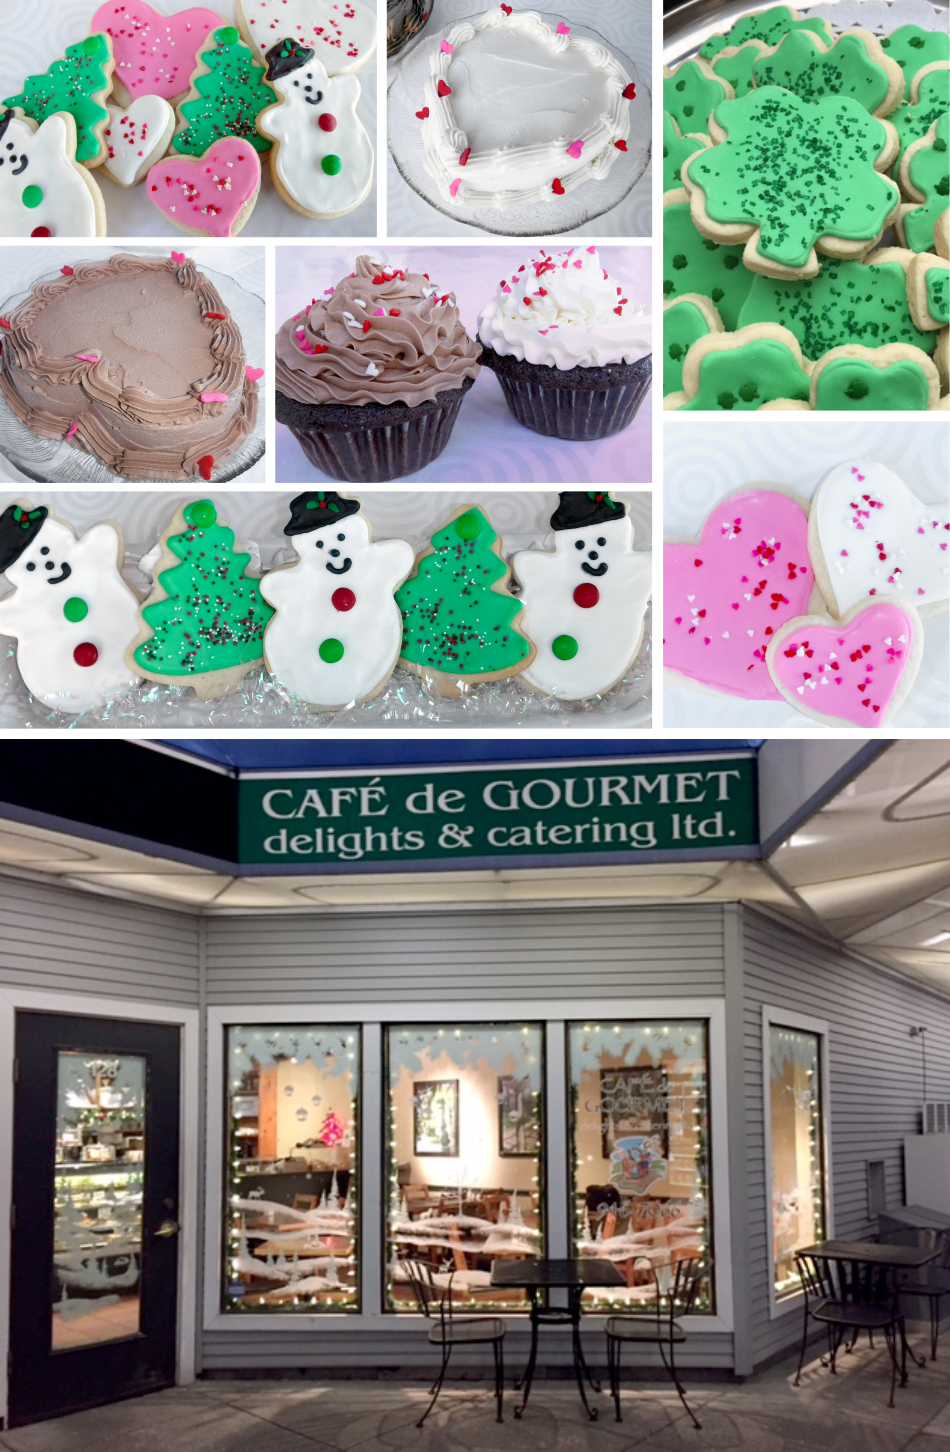 Cafe de Gourmet - Holiday Specialties